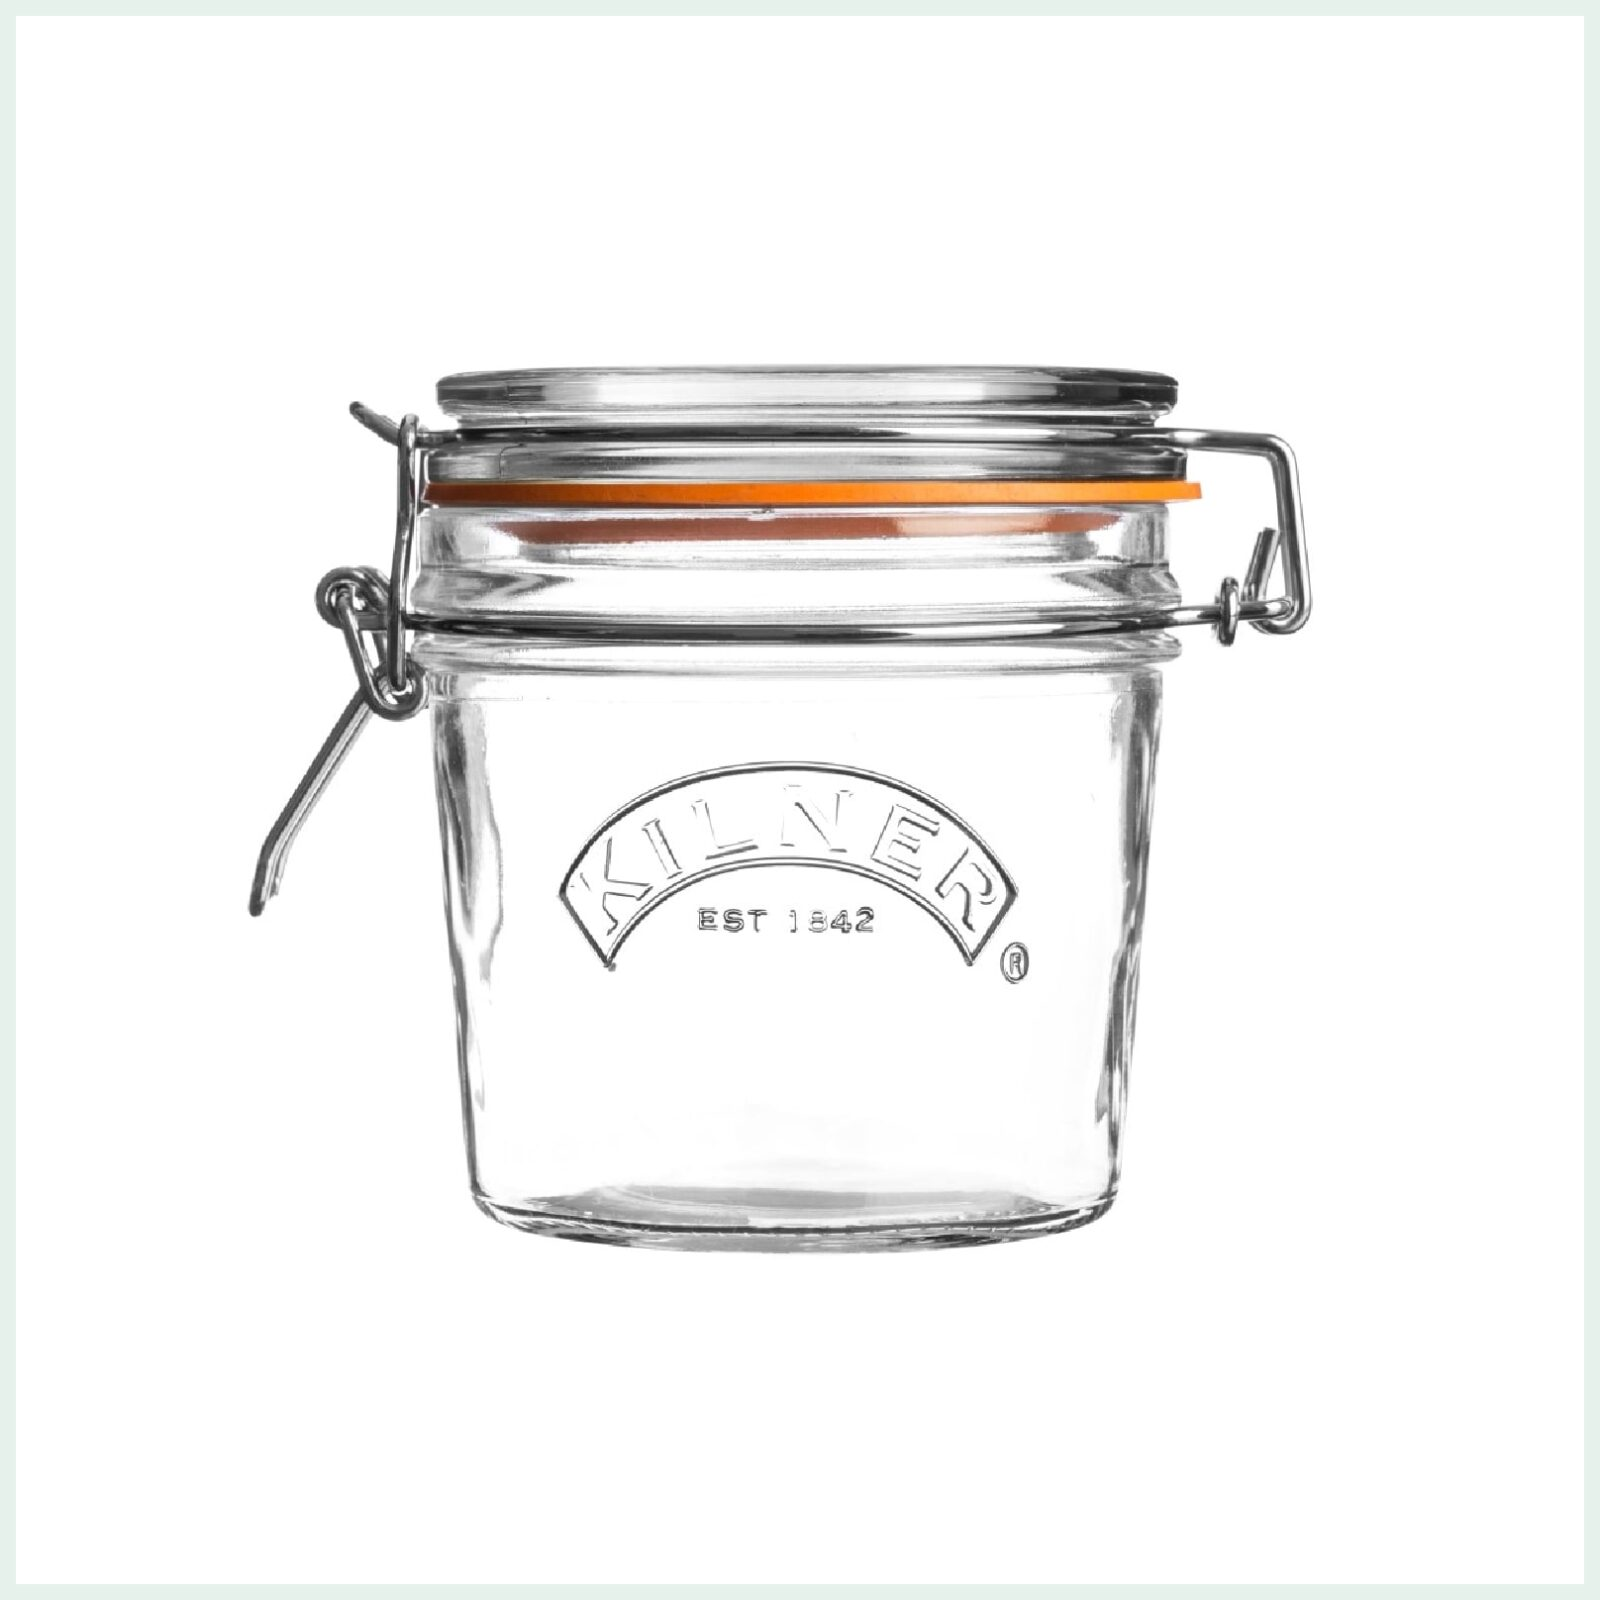 Kilner clip top jar 0.35 litres for preserving, jam making and canning